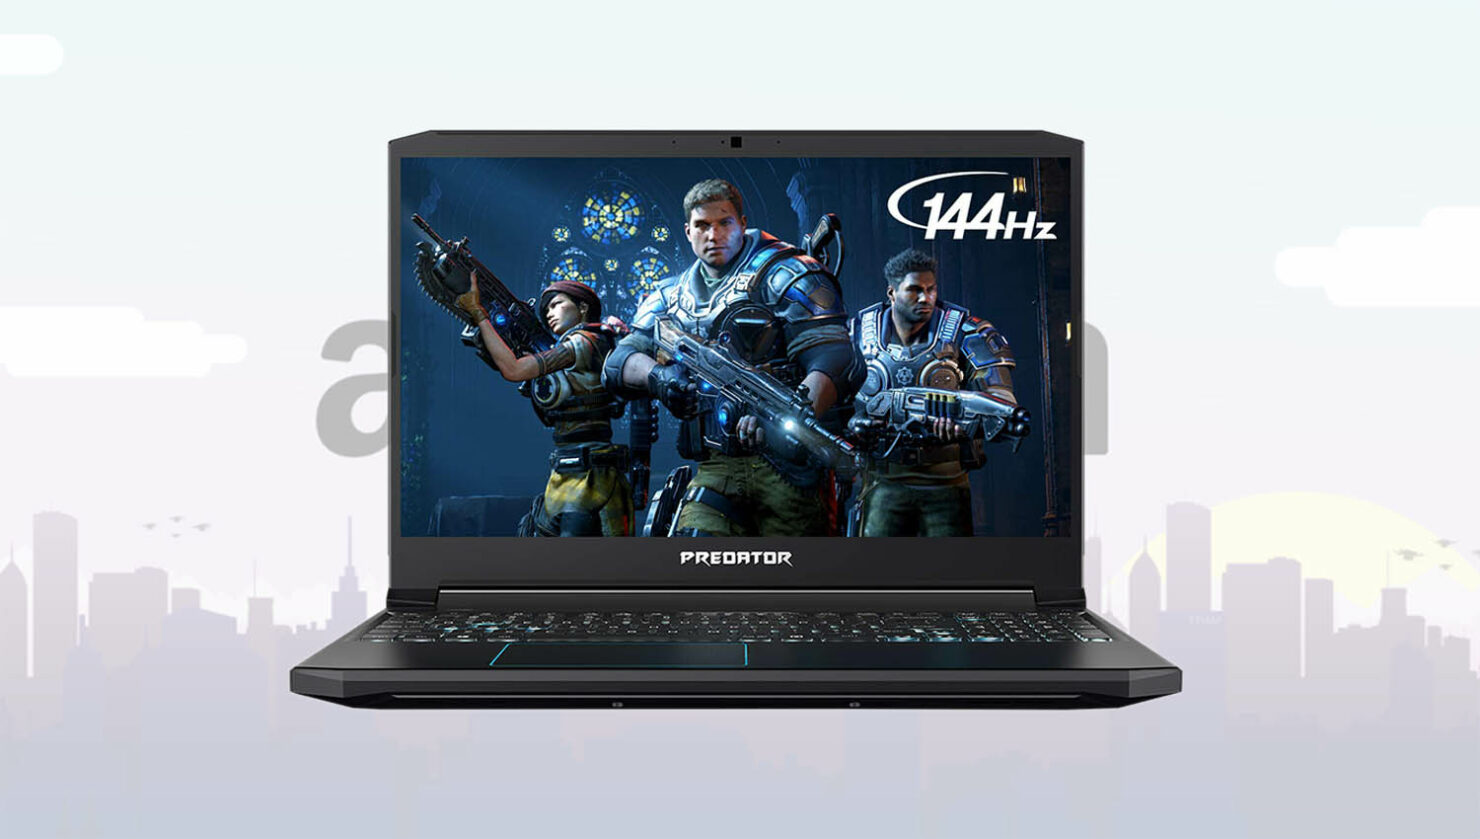 Acer's 2019 Predator Helios 300 Gaming Laptop Gets a $370 Discount, Offers Undervolted 6-Core CPU, GTX 1660 Ti & More